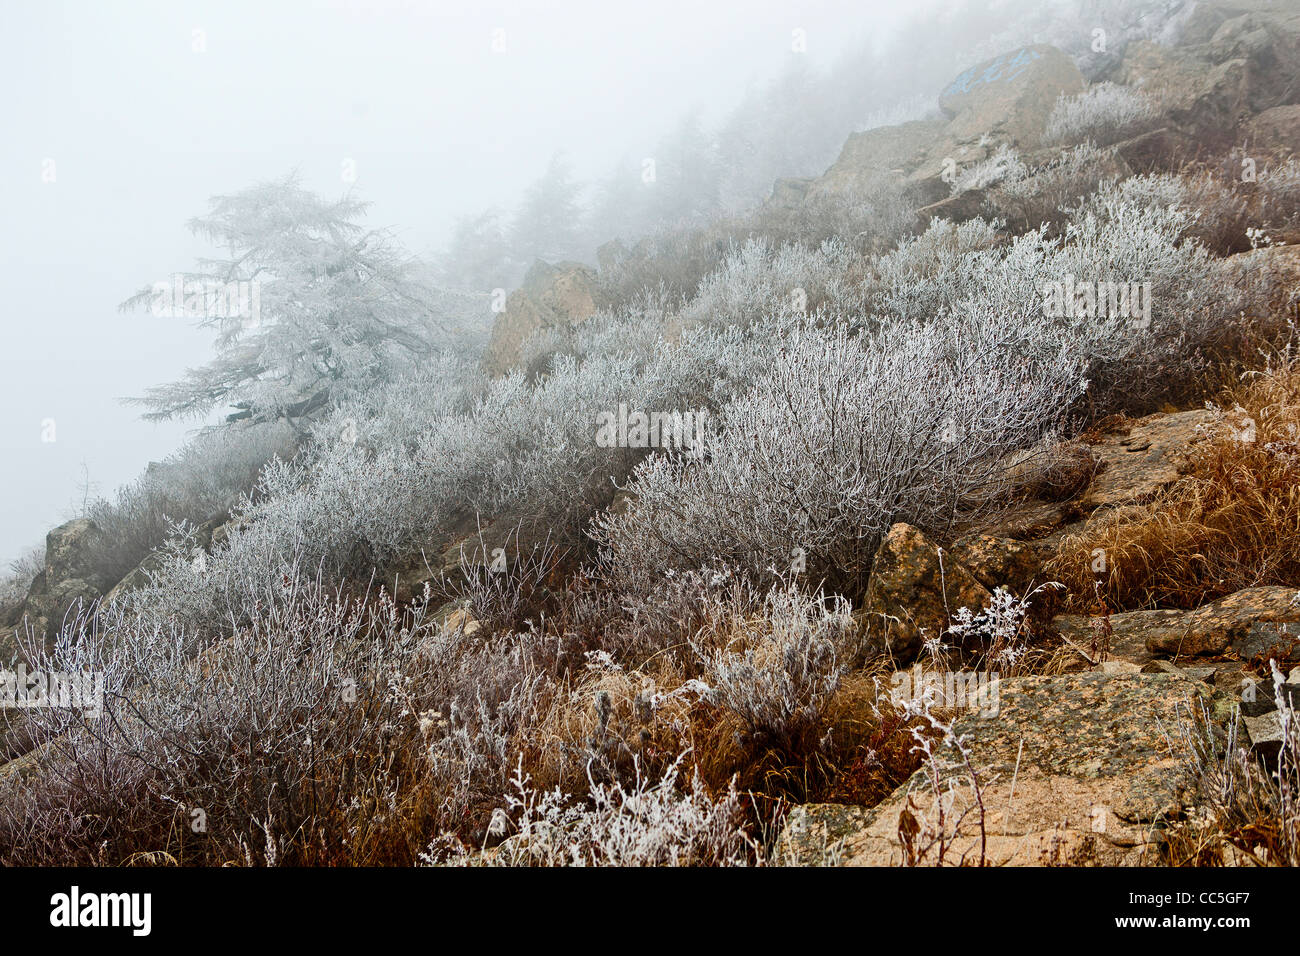 Ice-rimmed shrubbery, Wuling Mountain, Beijing, China - Stock Image